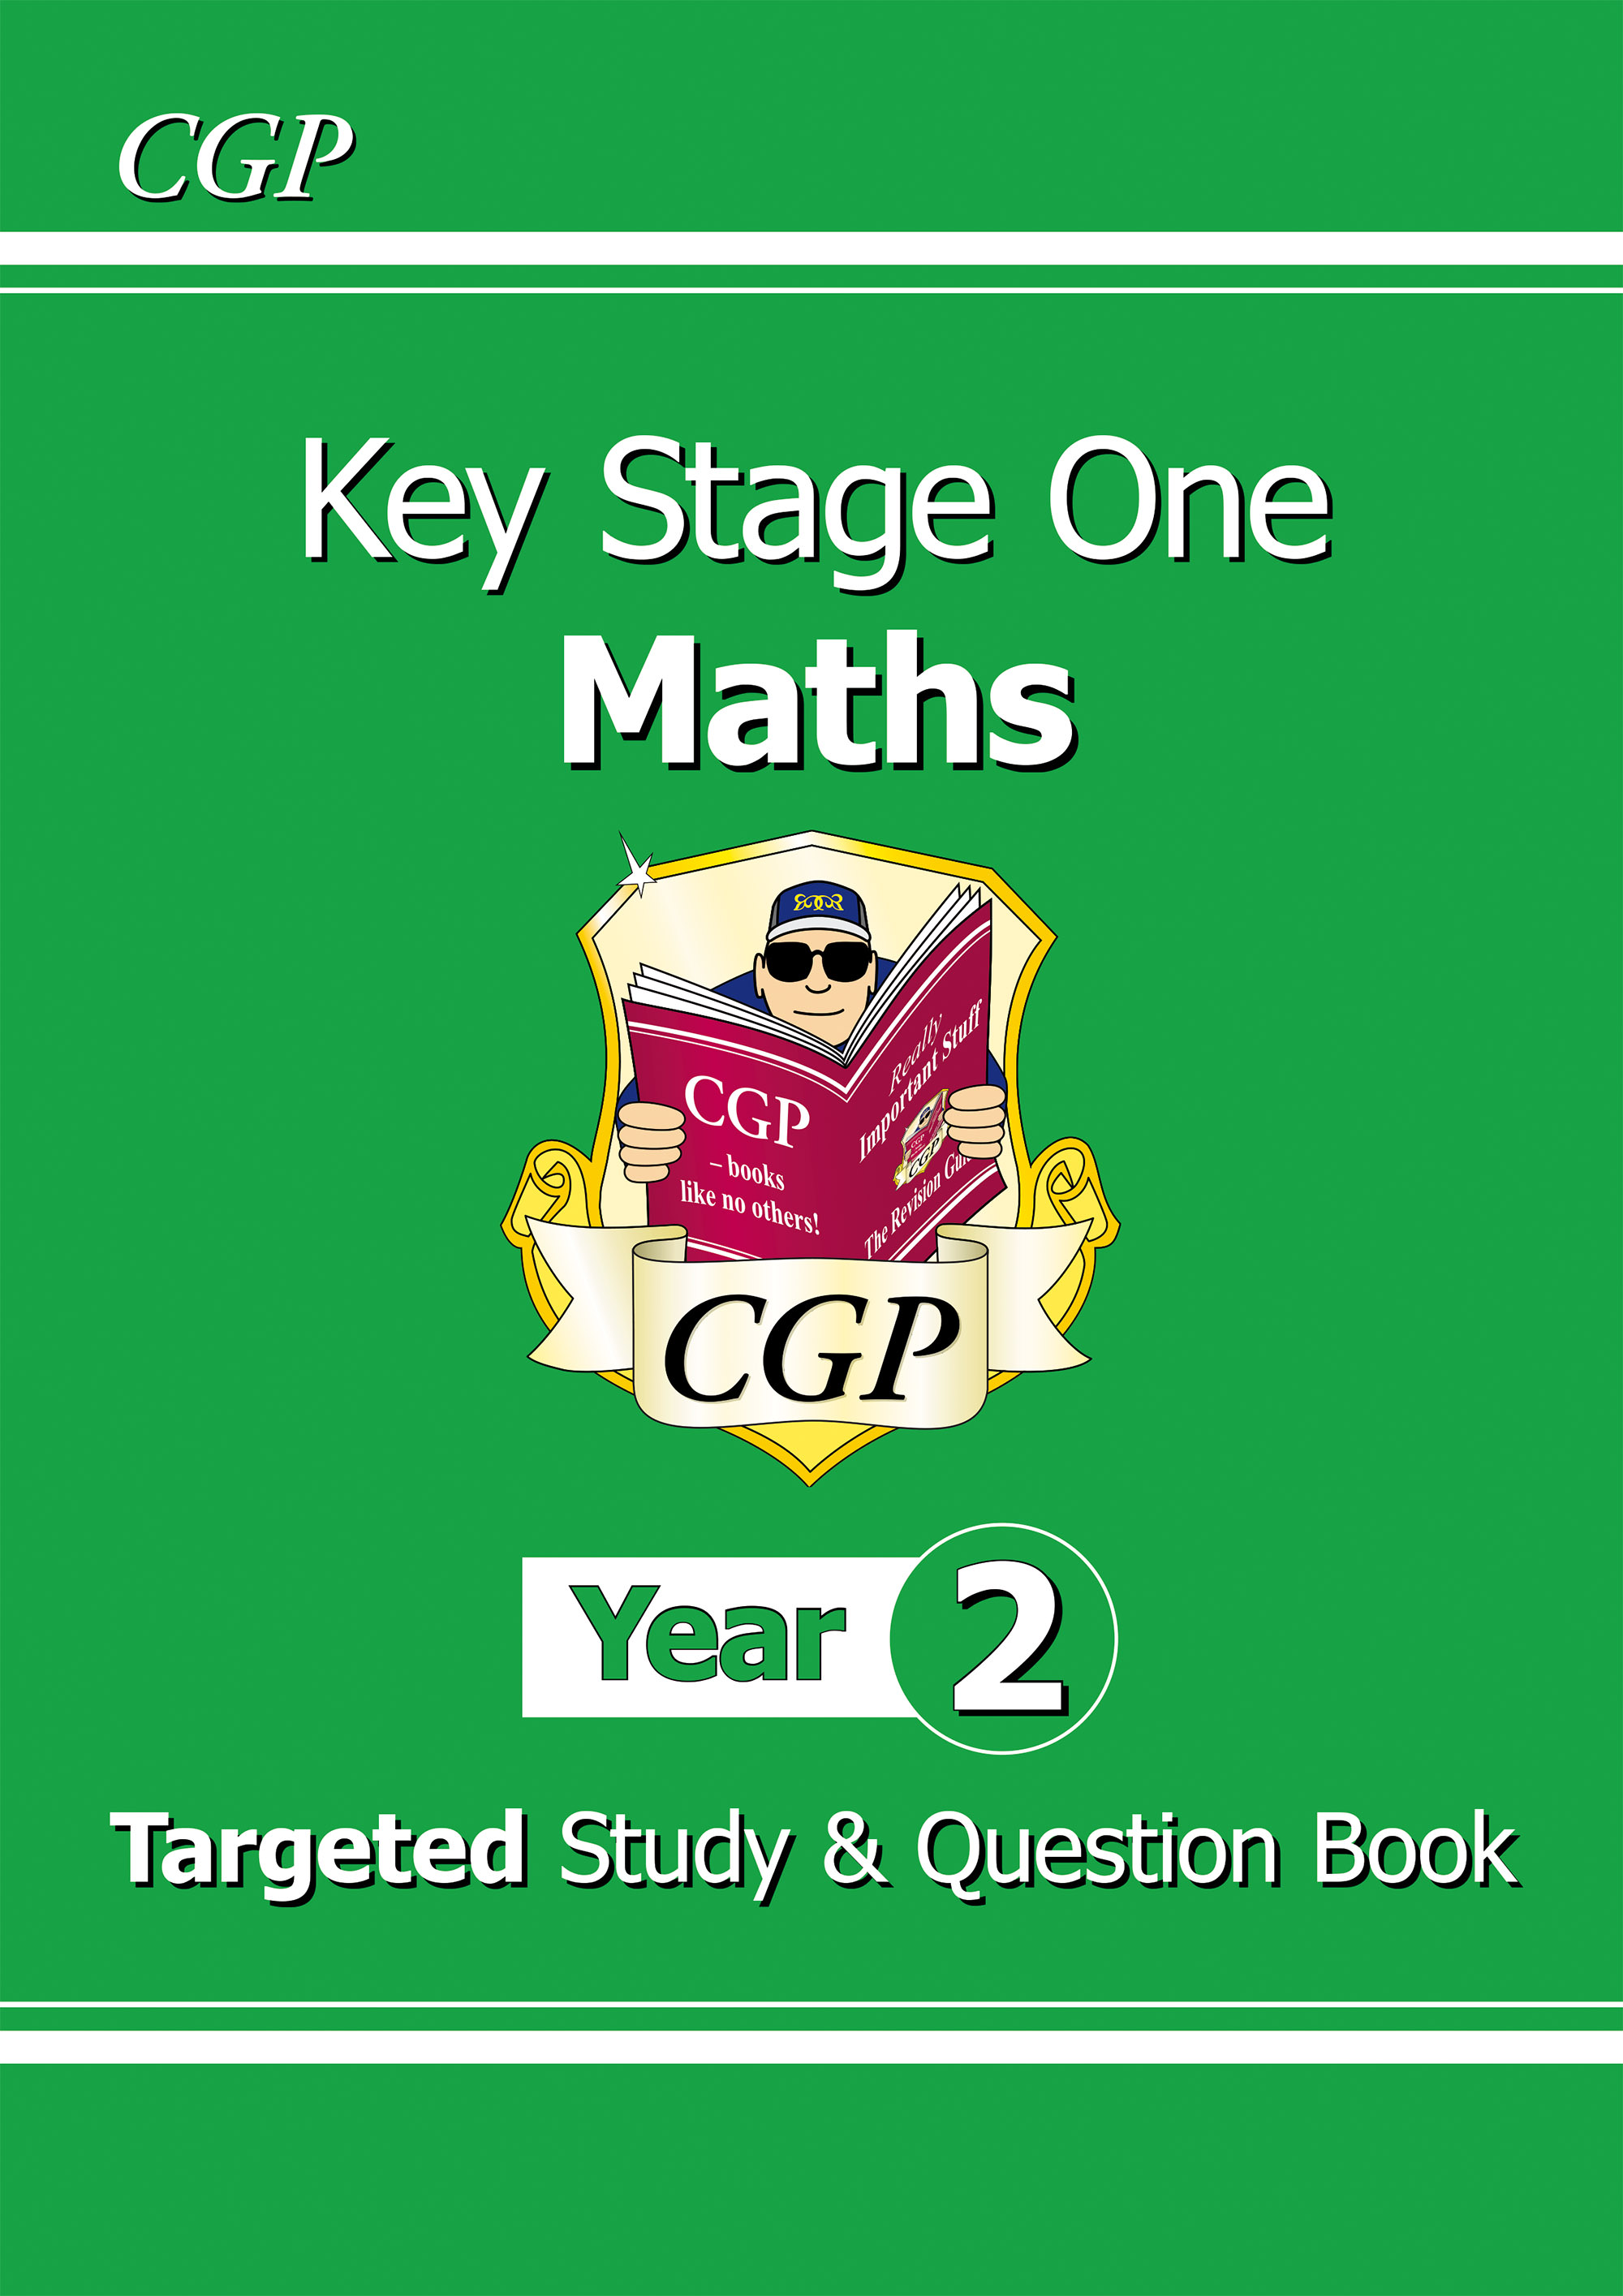 M2R11DK - KS1 Maths Targeted Study & Question Book - Year 2